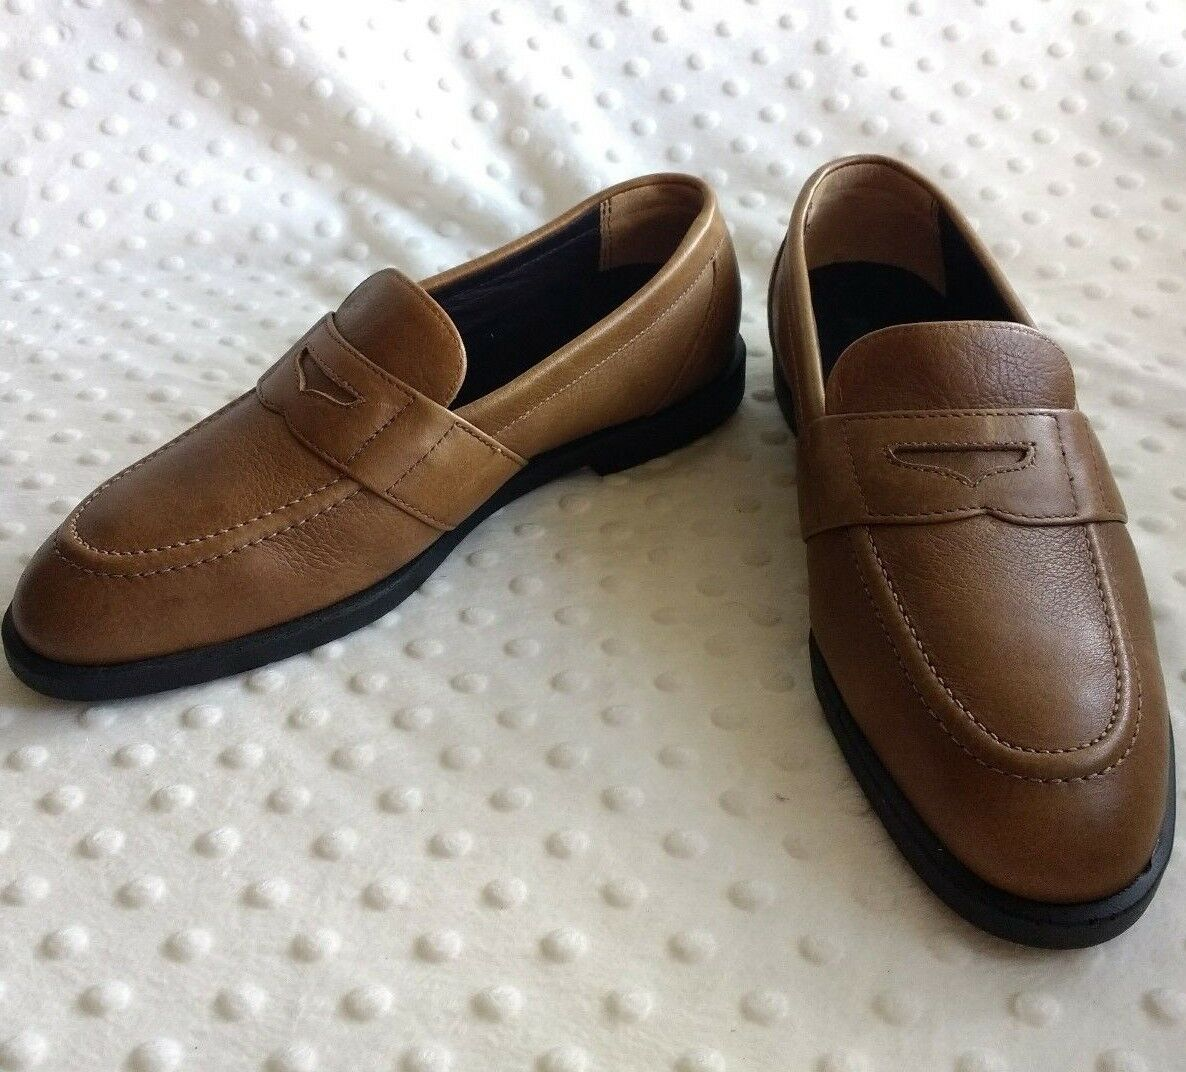 Hush Puppies Mens Professional Penny Loafer Sz 7.5 Tan Leather Professional Mens Dress Shoes 097998